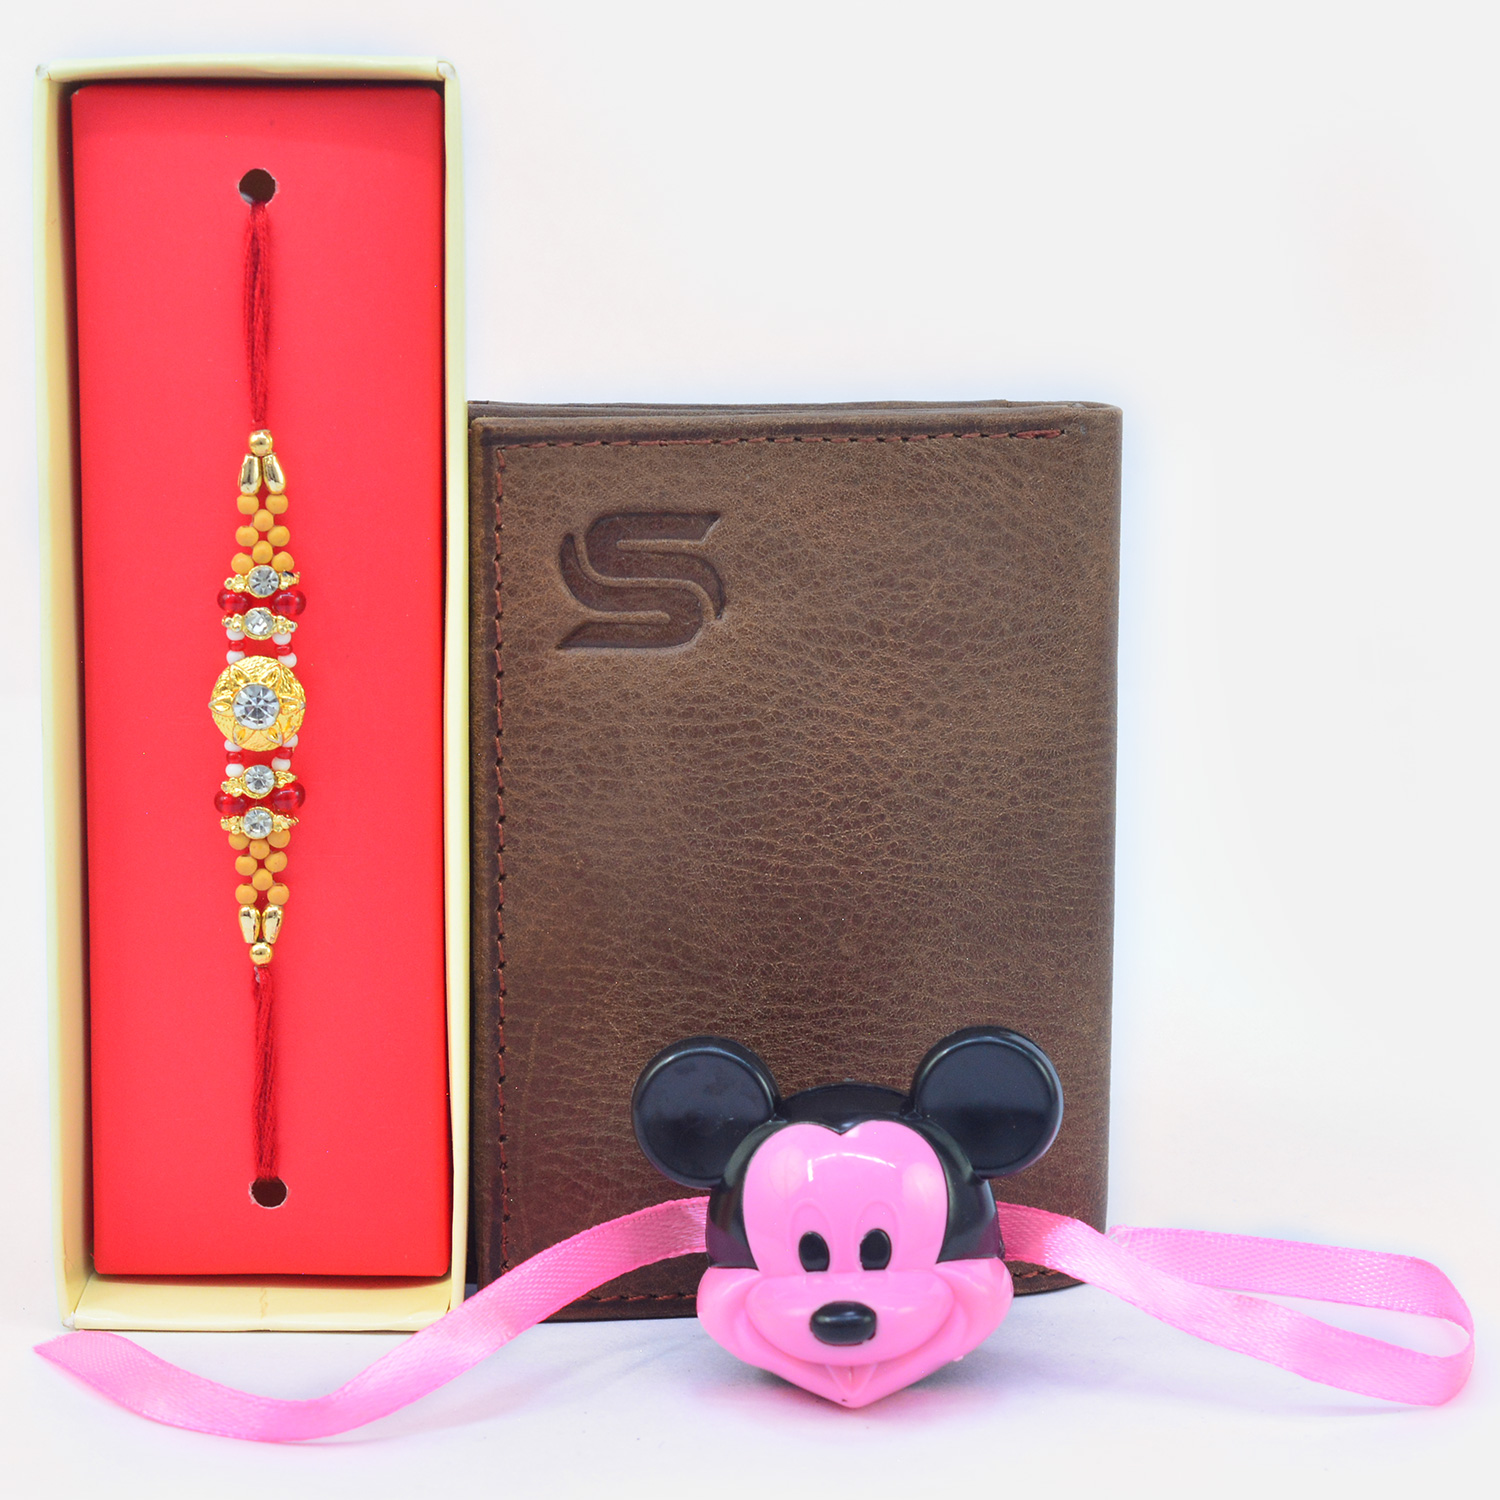 Amazing Multicolor Beads and Mickey Mouse Kids Rakhi with Leather Wallet for Men